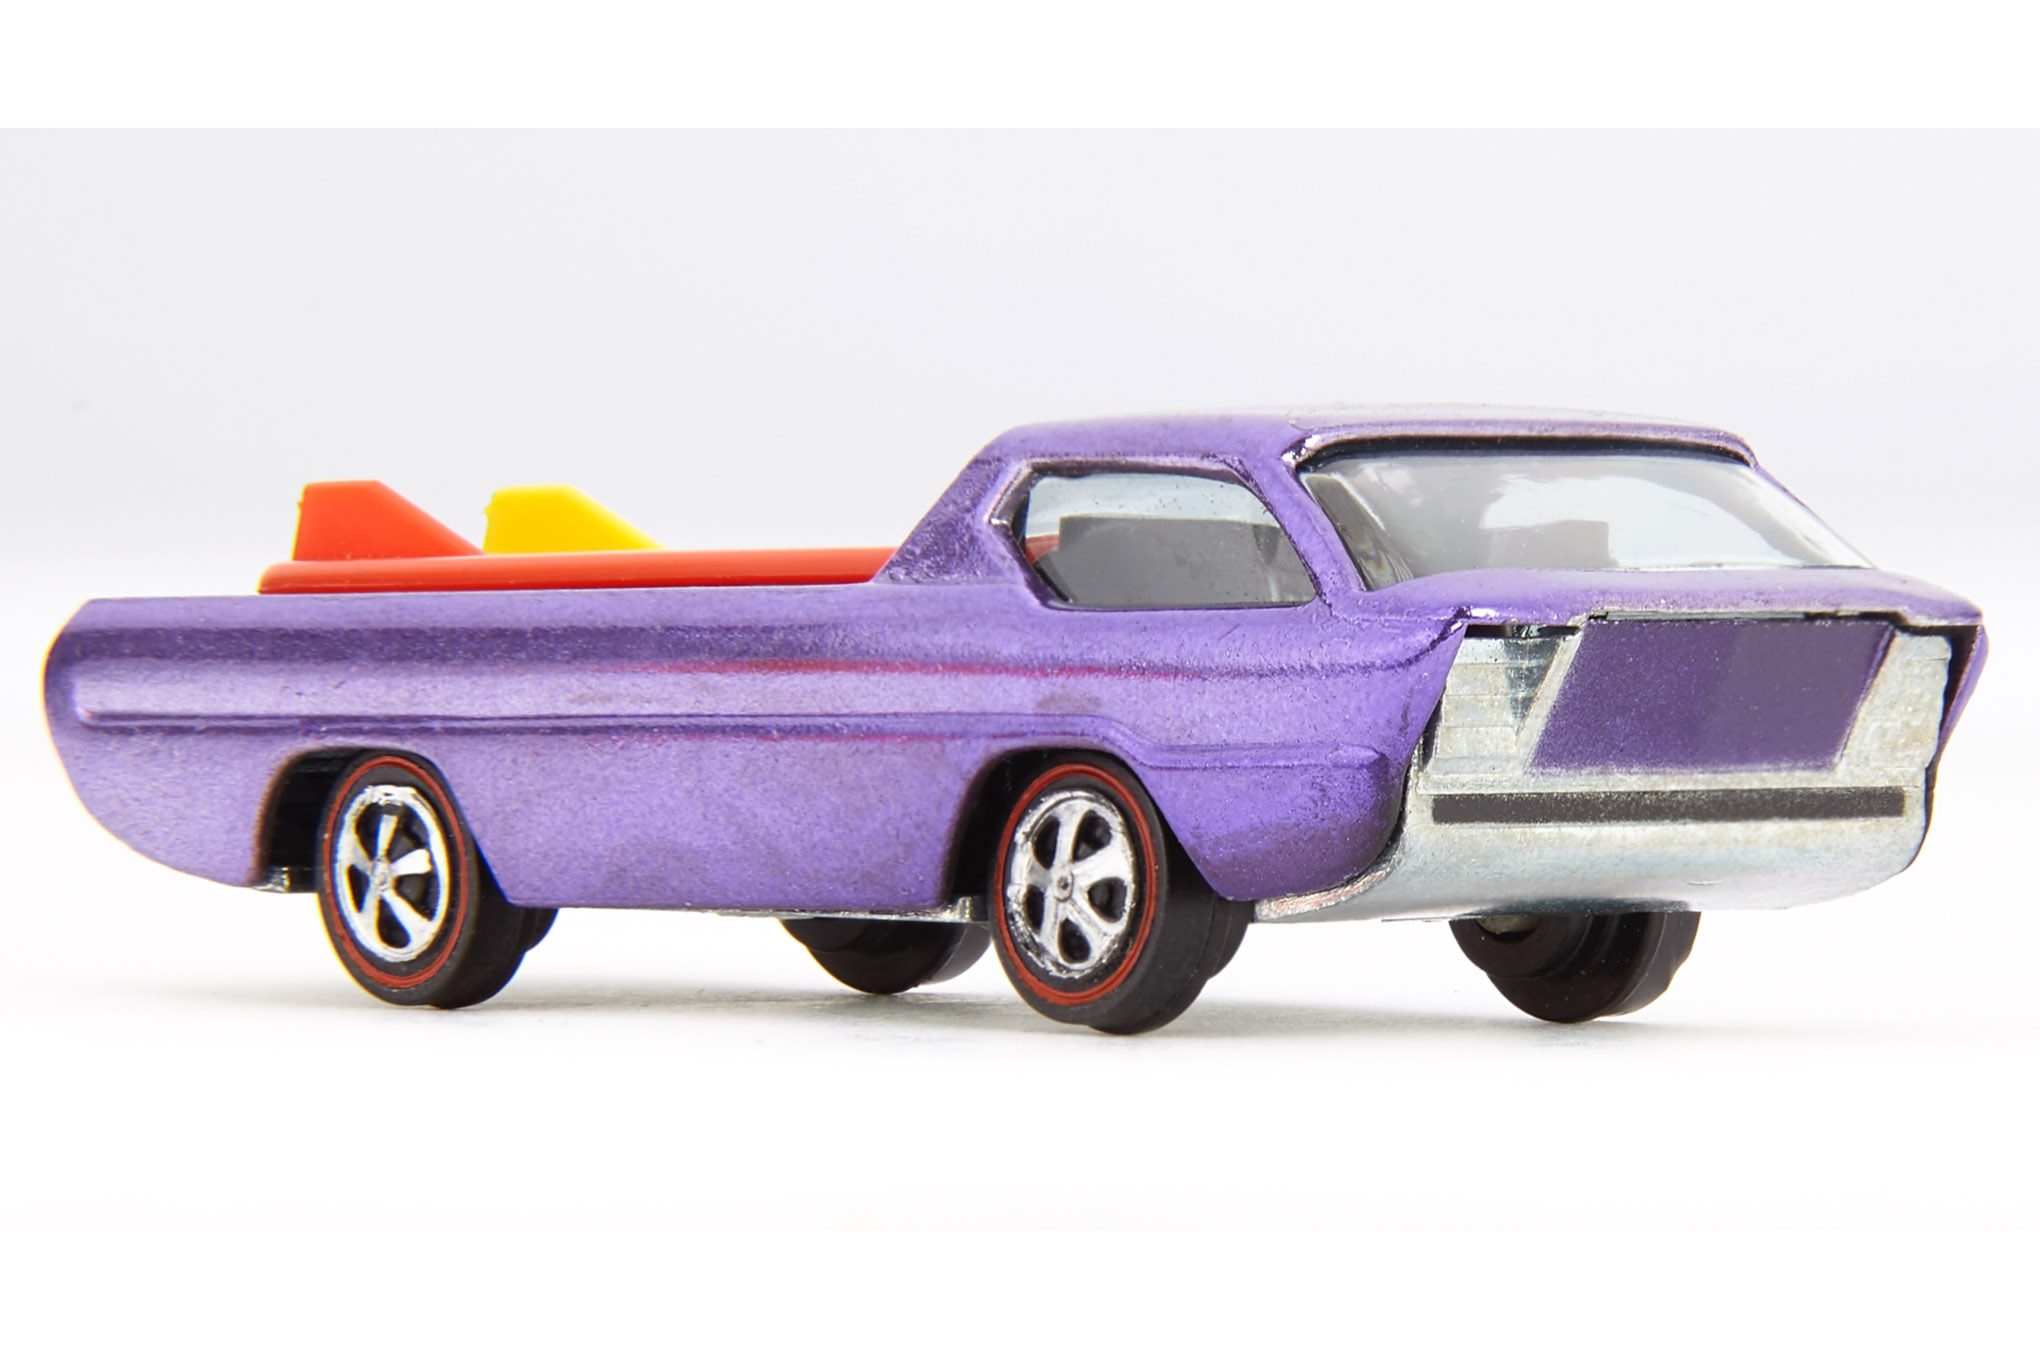 Truck Trend Legends: This History of Hot Wheels